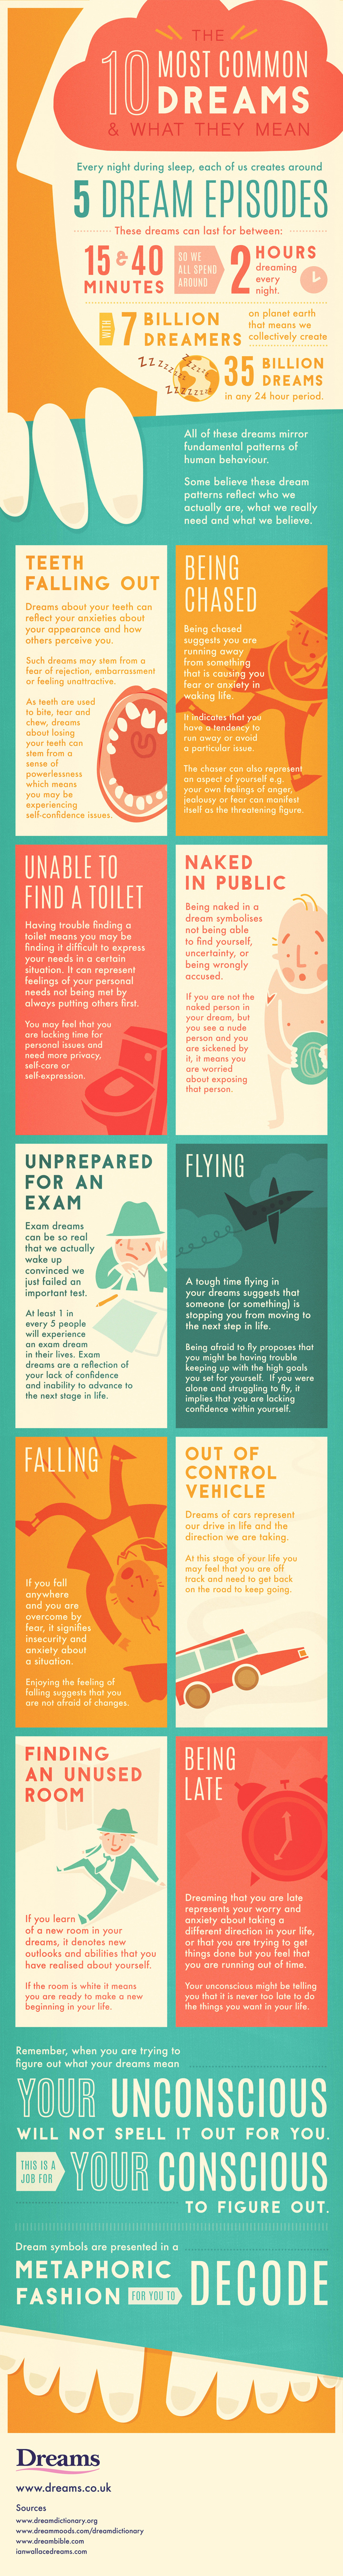 Decoded: 10 Most Seen and Recurring Dreams